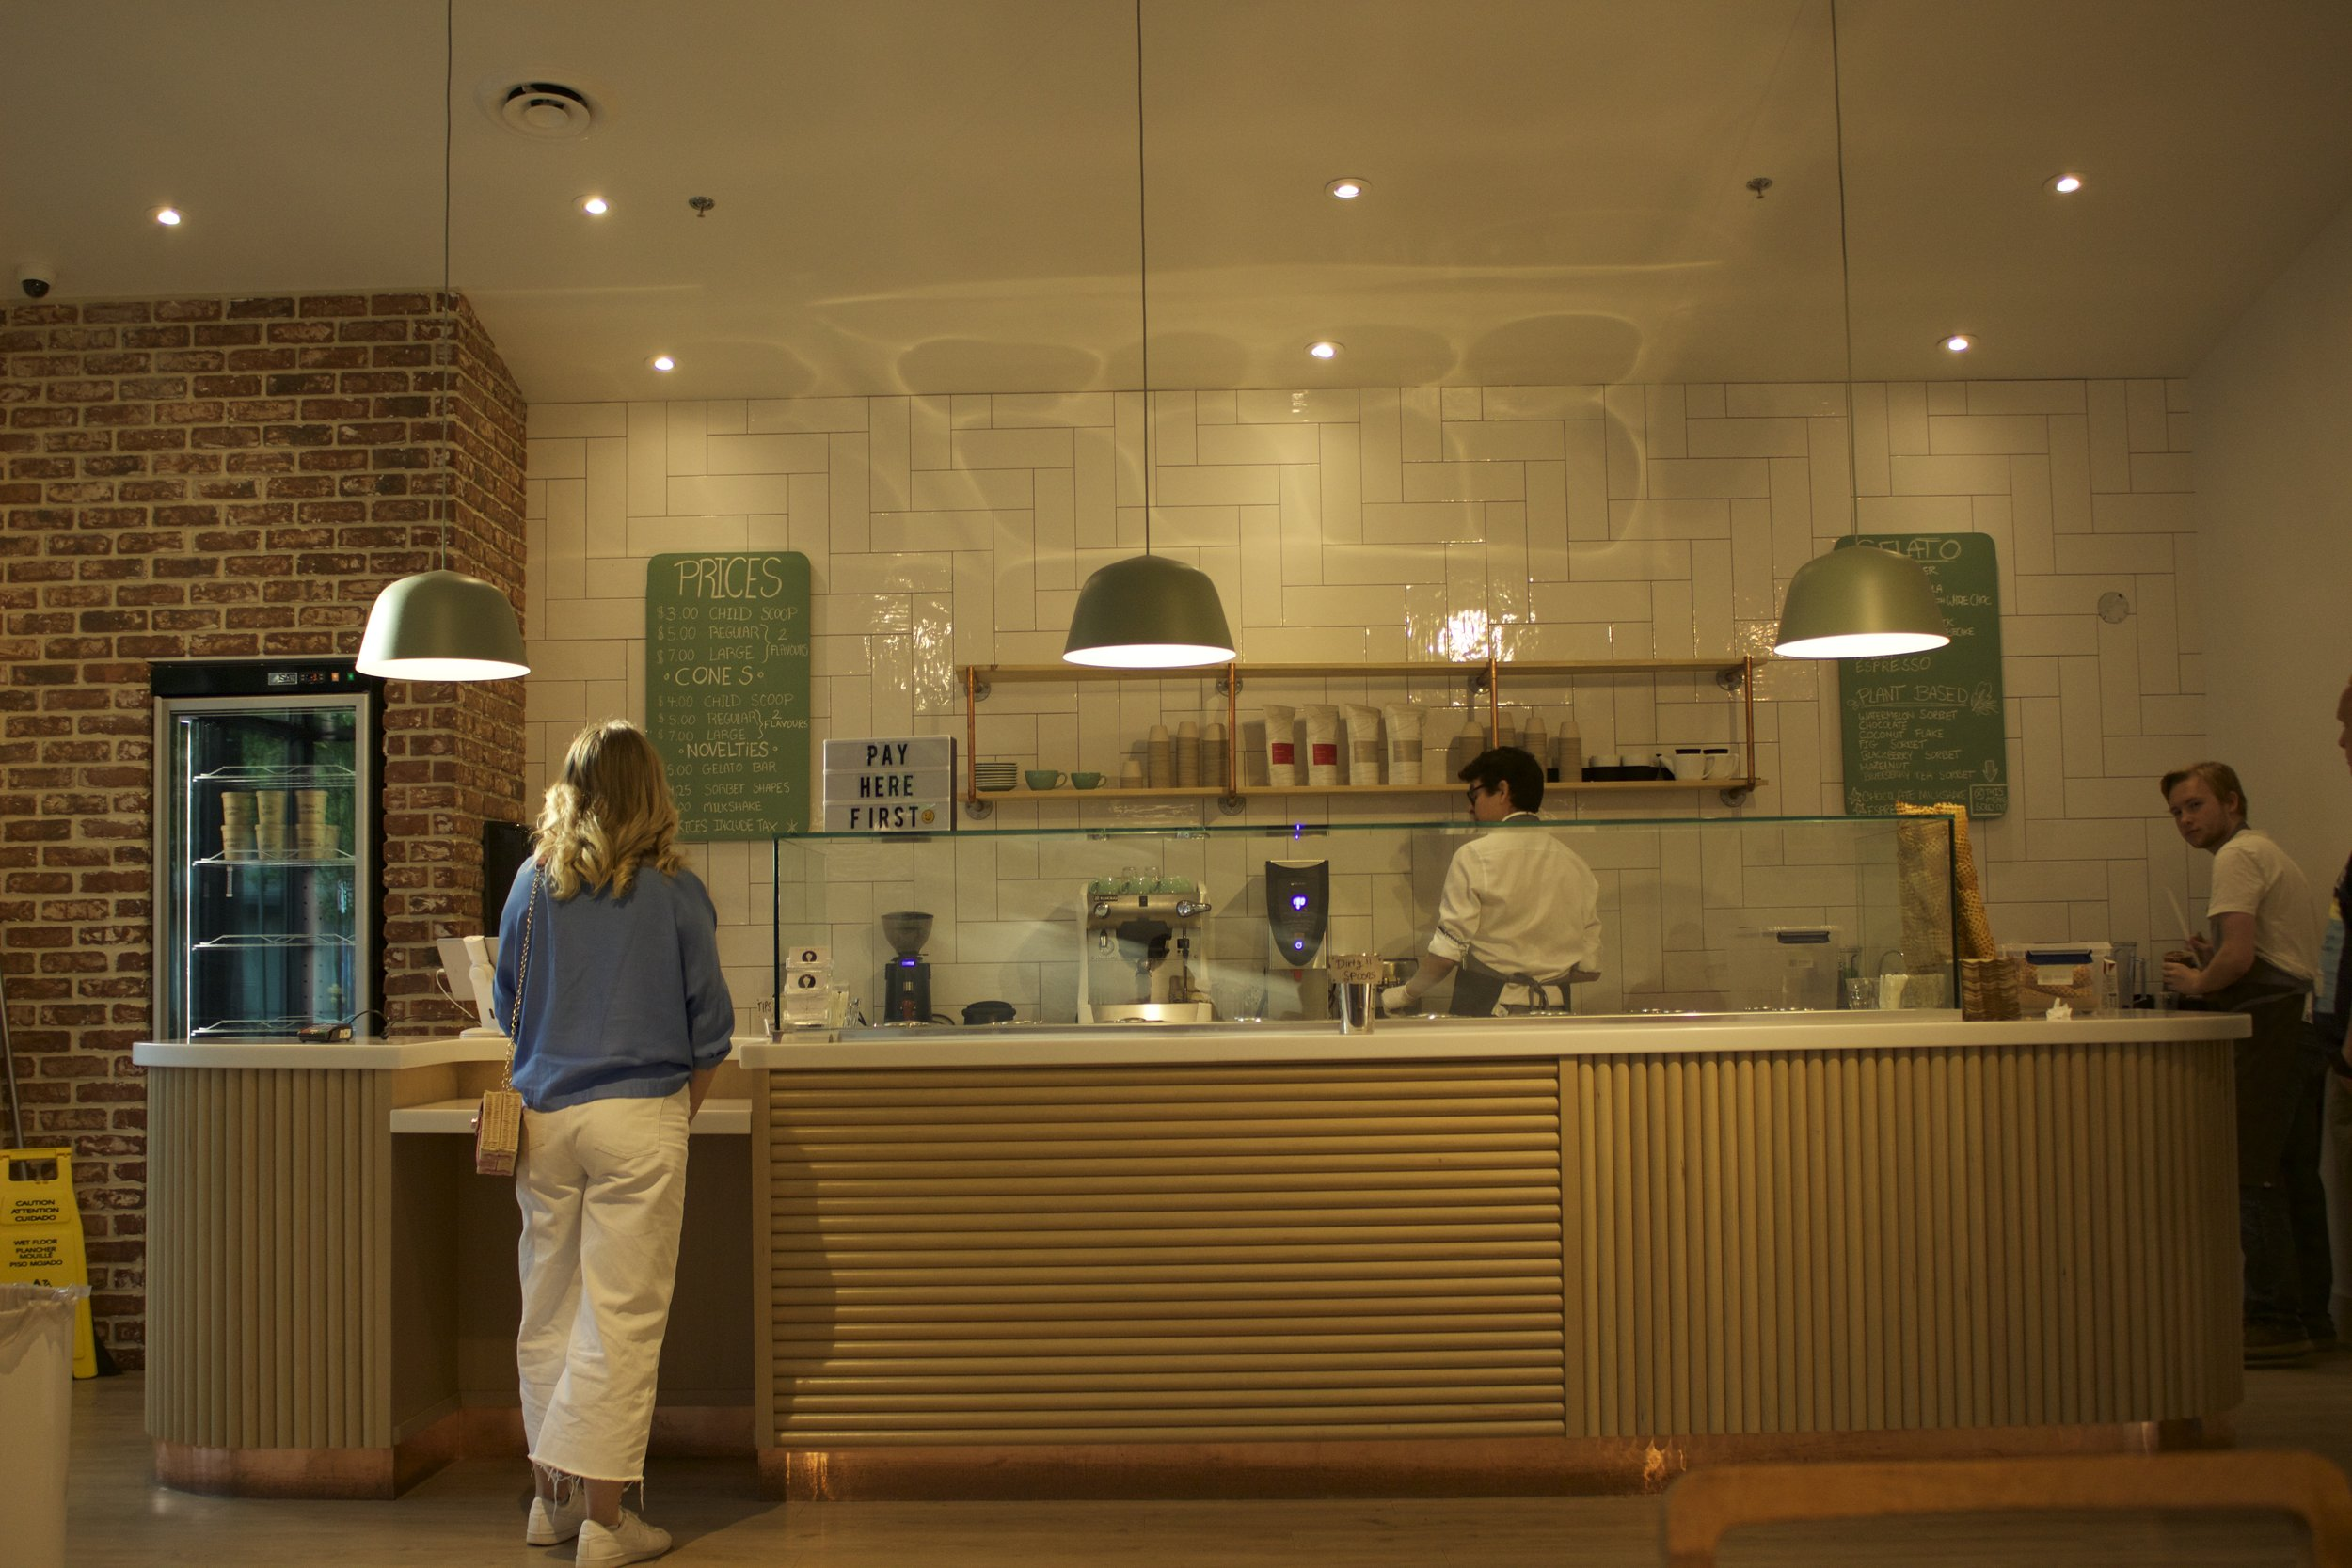 I loved the layout of this ice cream shop